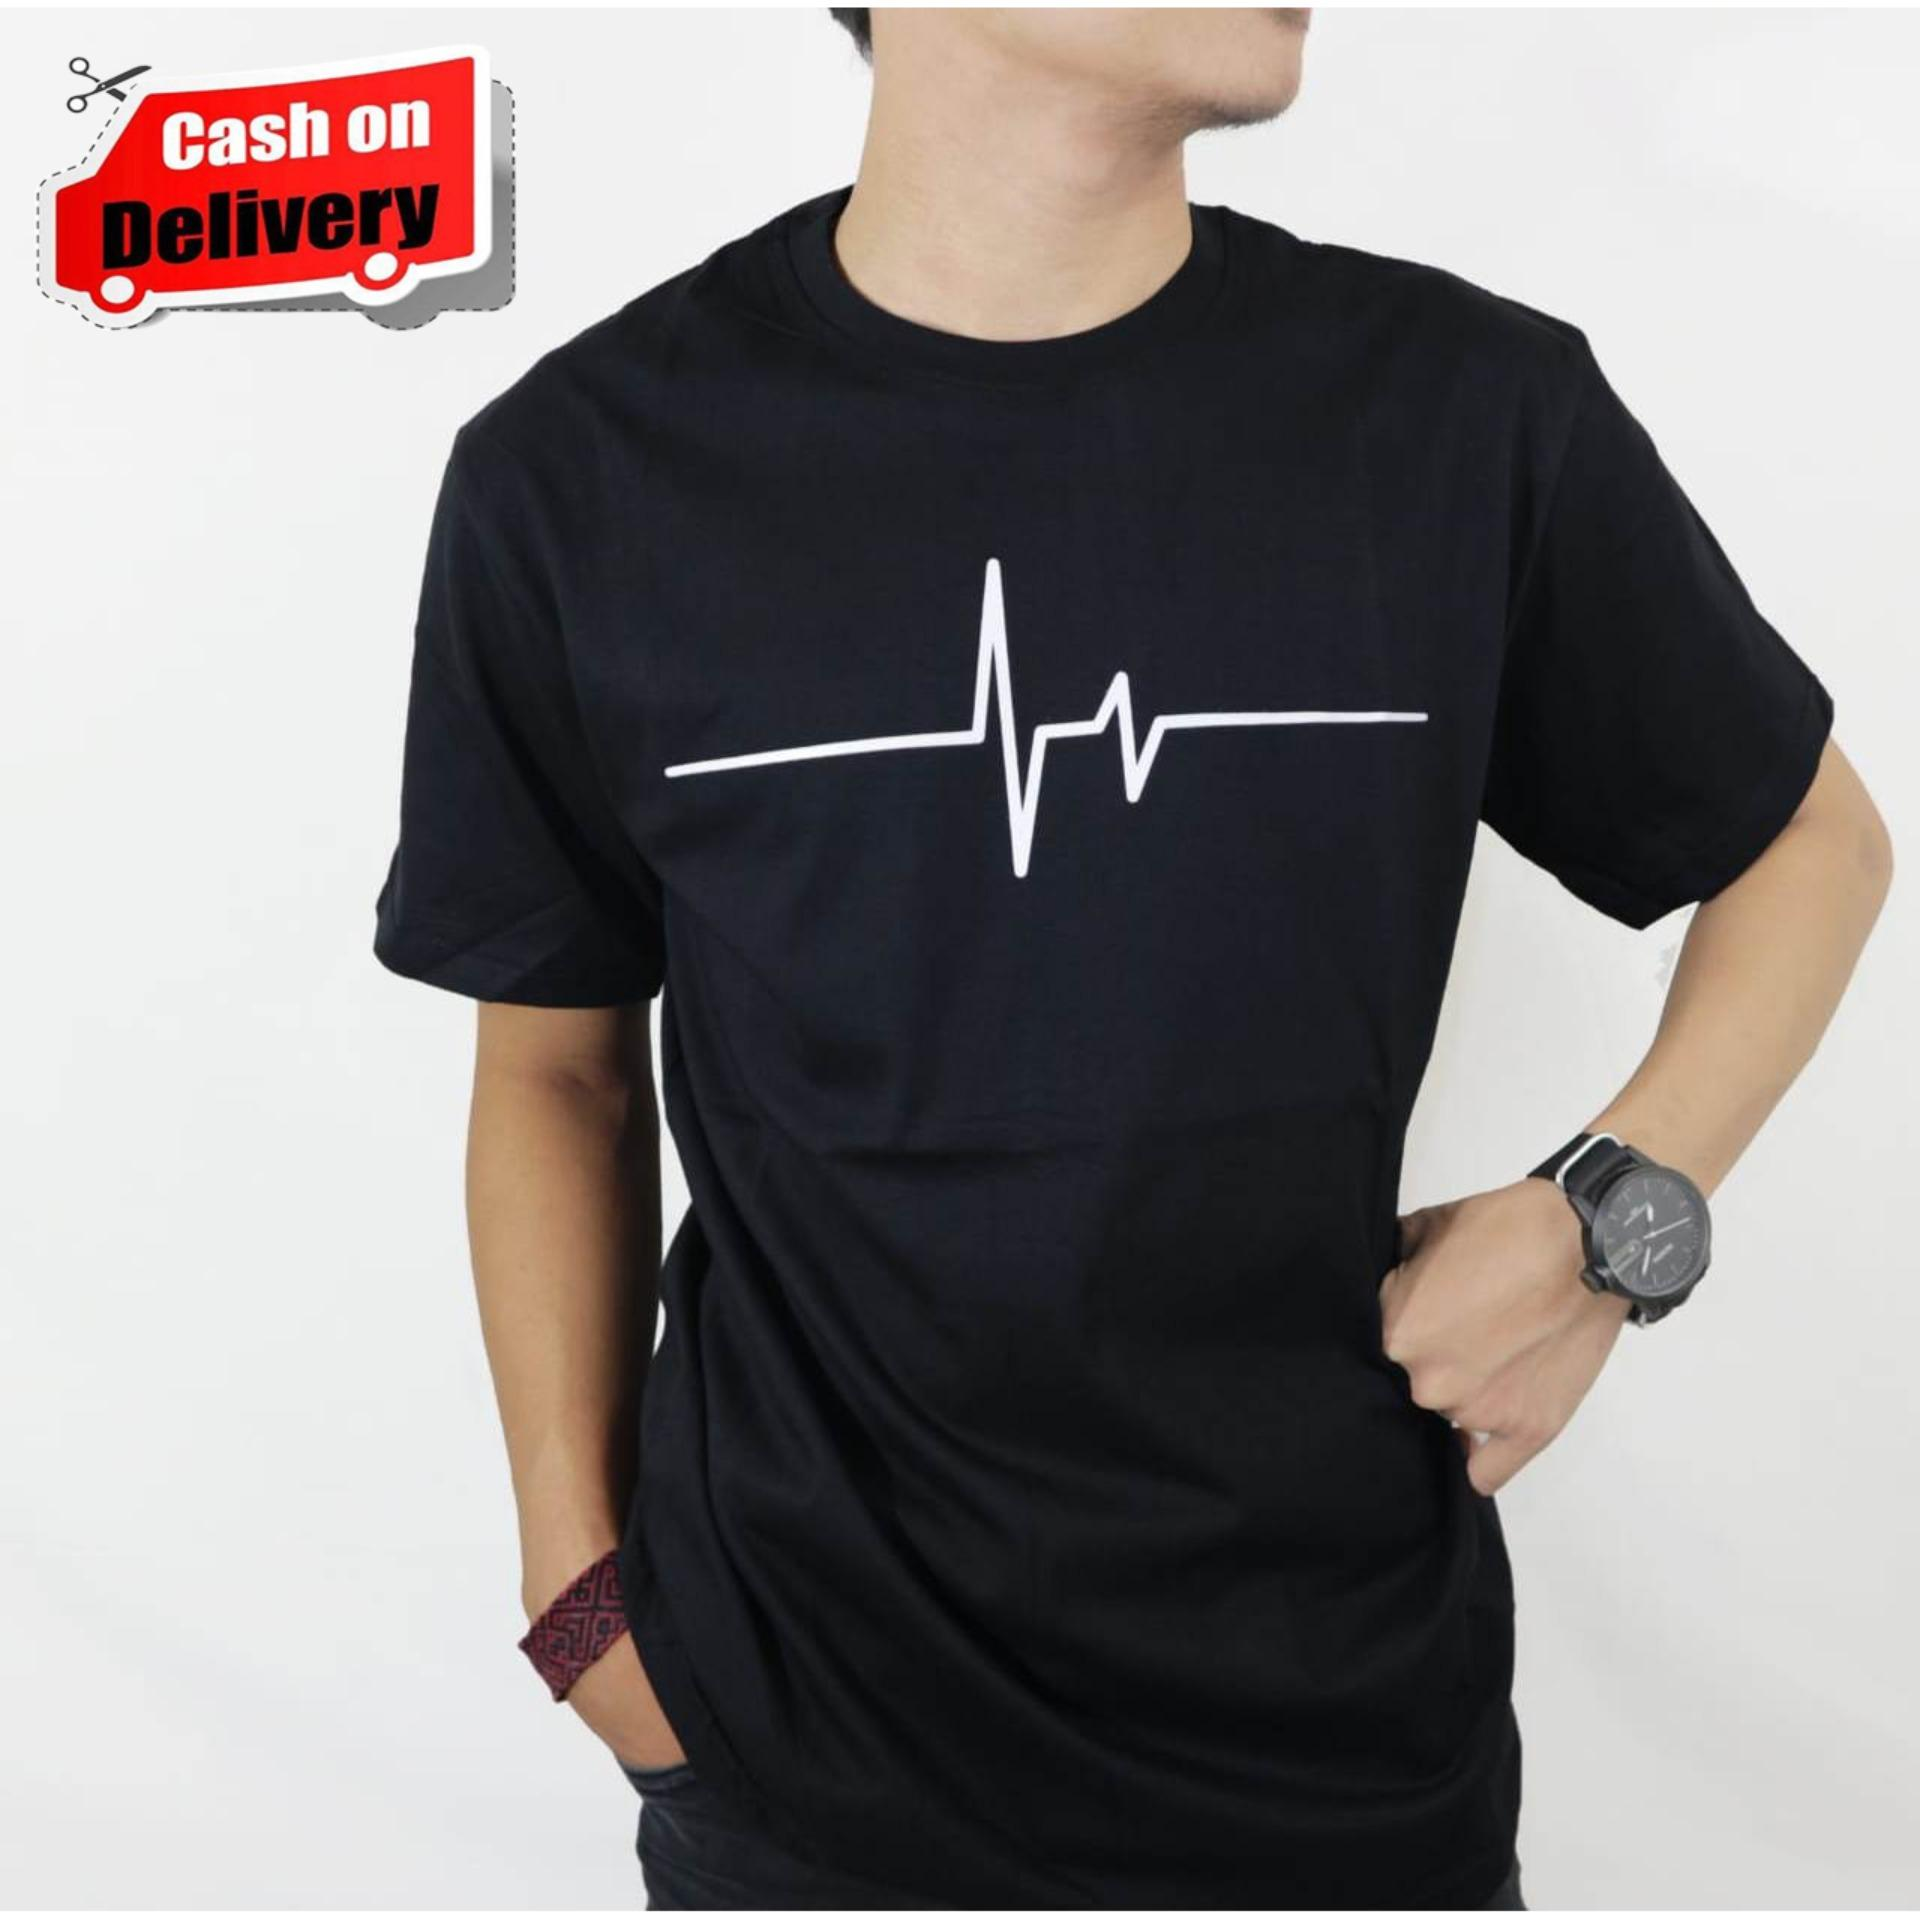 Presiden Fashion - kaos distro T-shirt fashion 100% soft cotton combed 30s  kaos 9e5d49a6ec